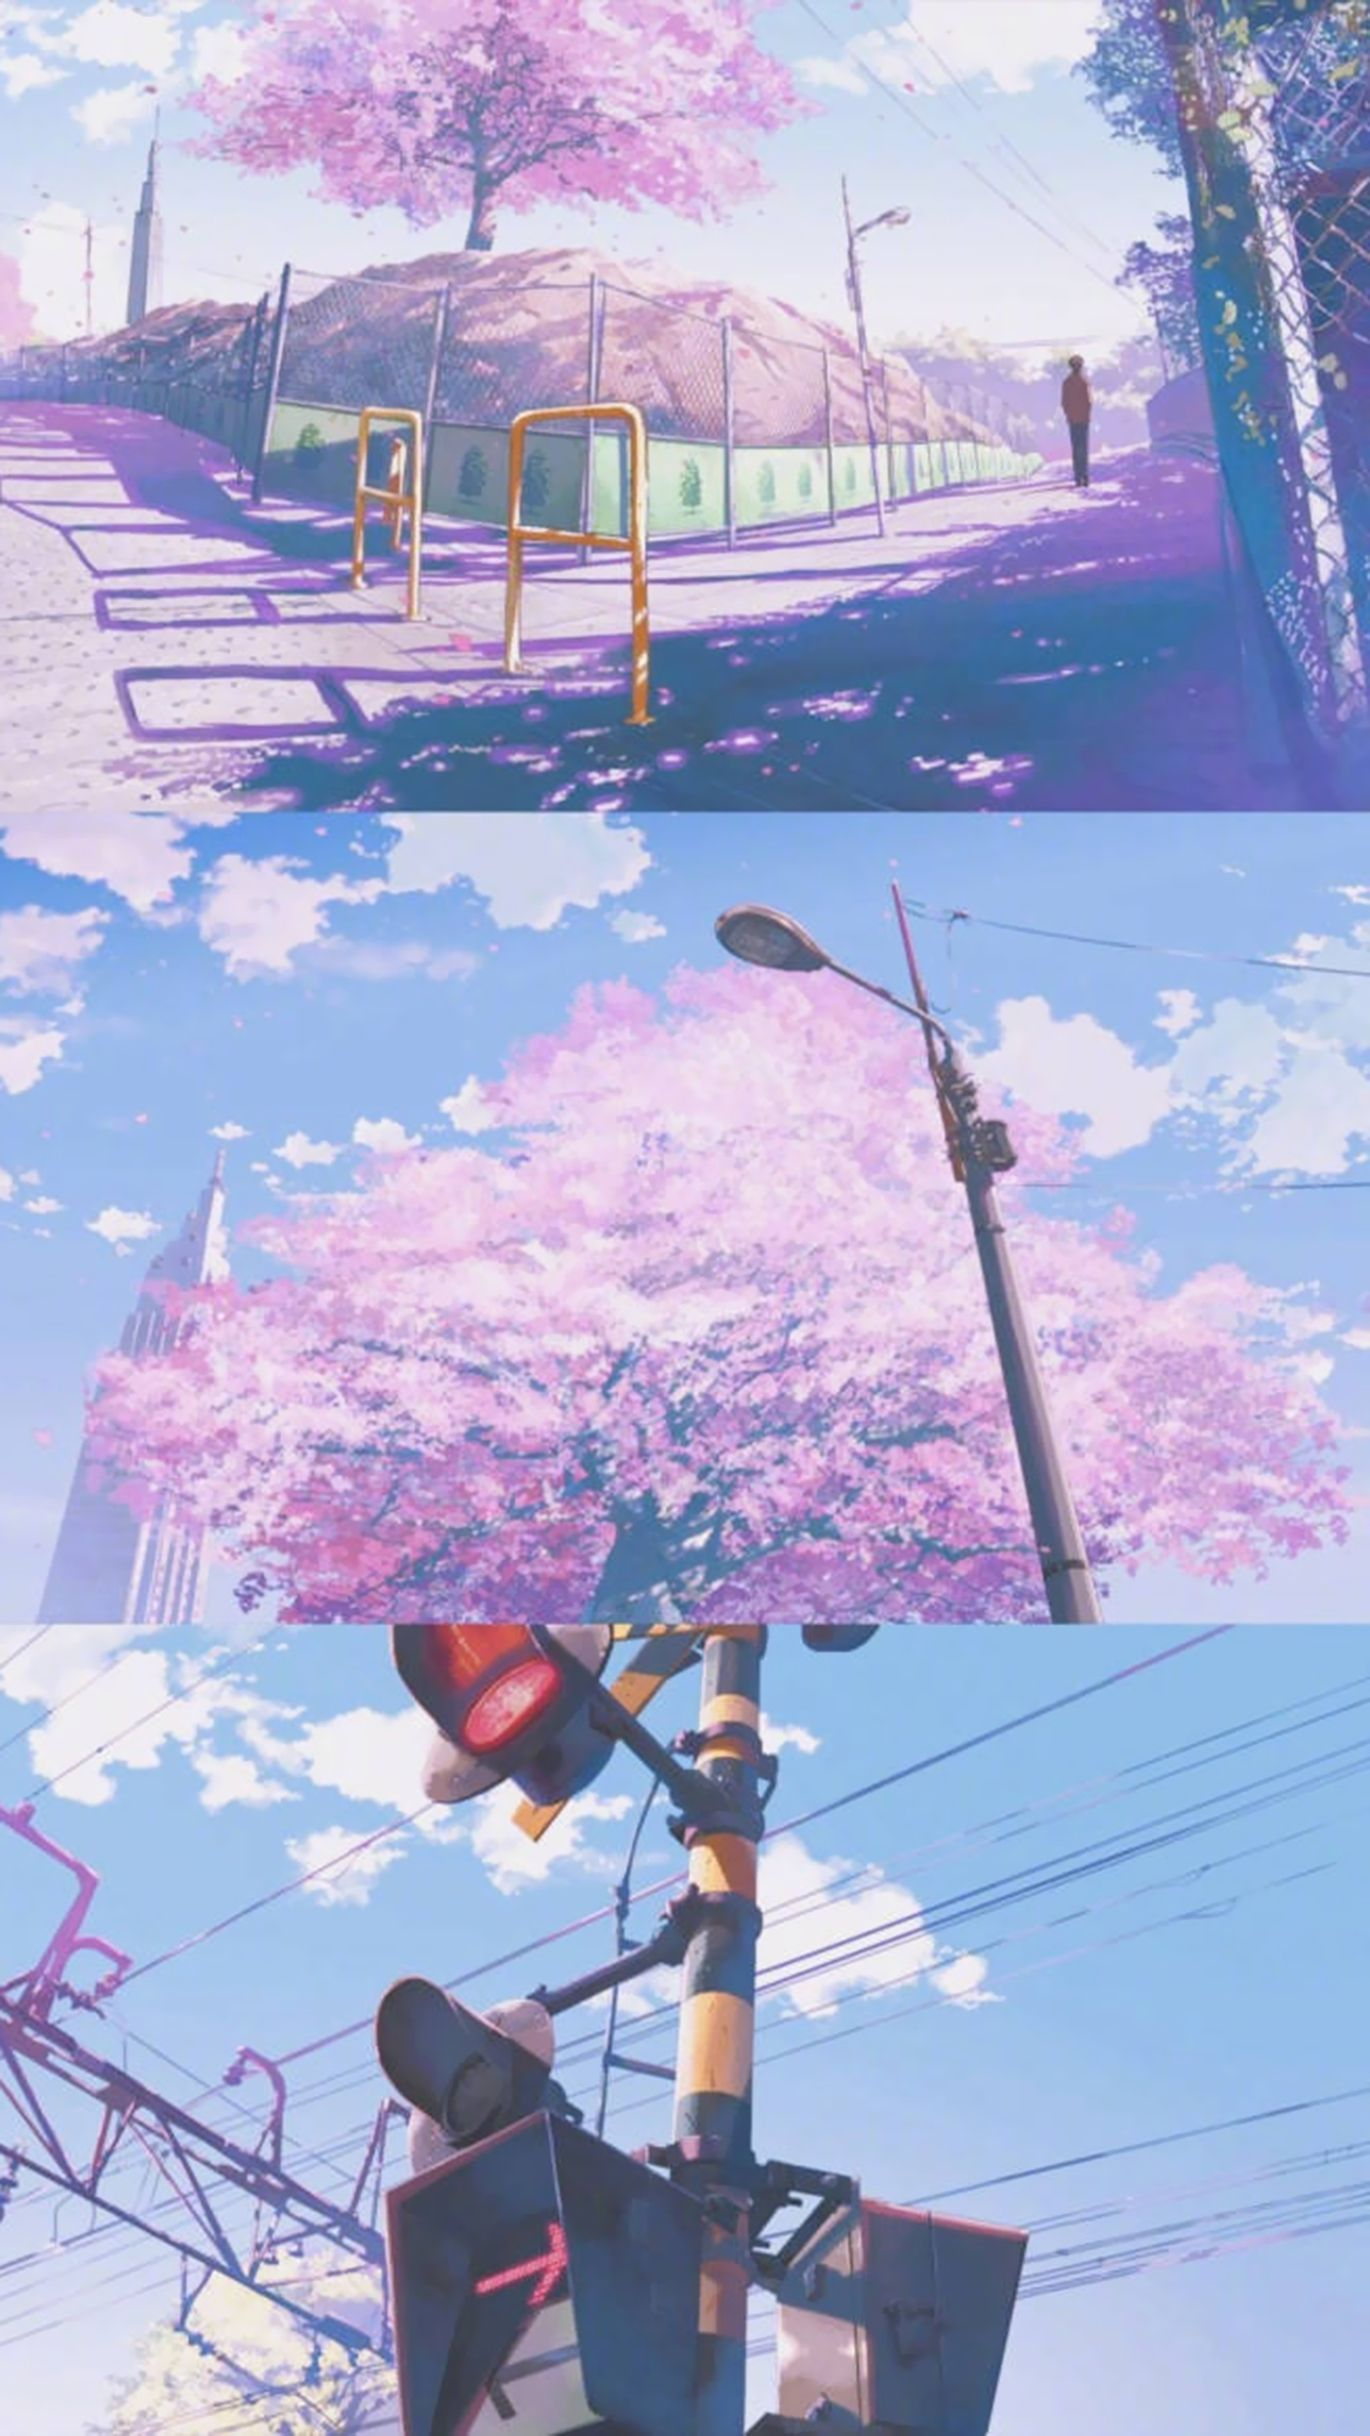 Cherry Blossoms Wallpaper Anime Scenery Wallpaper Anime Backgrounds Wallpapers Anime Scenery